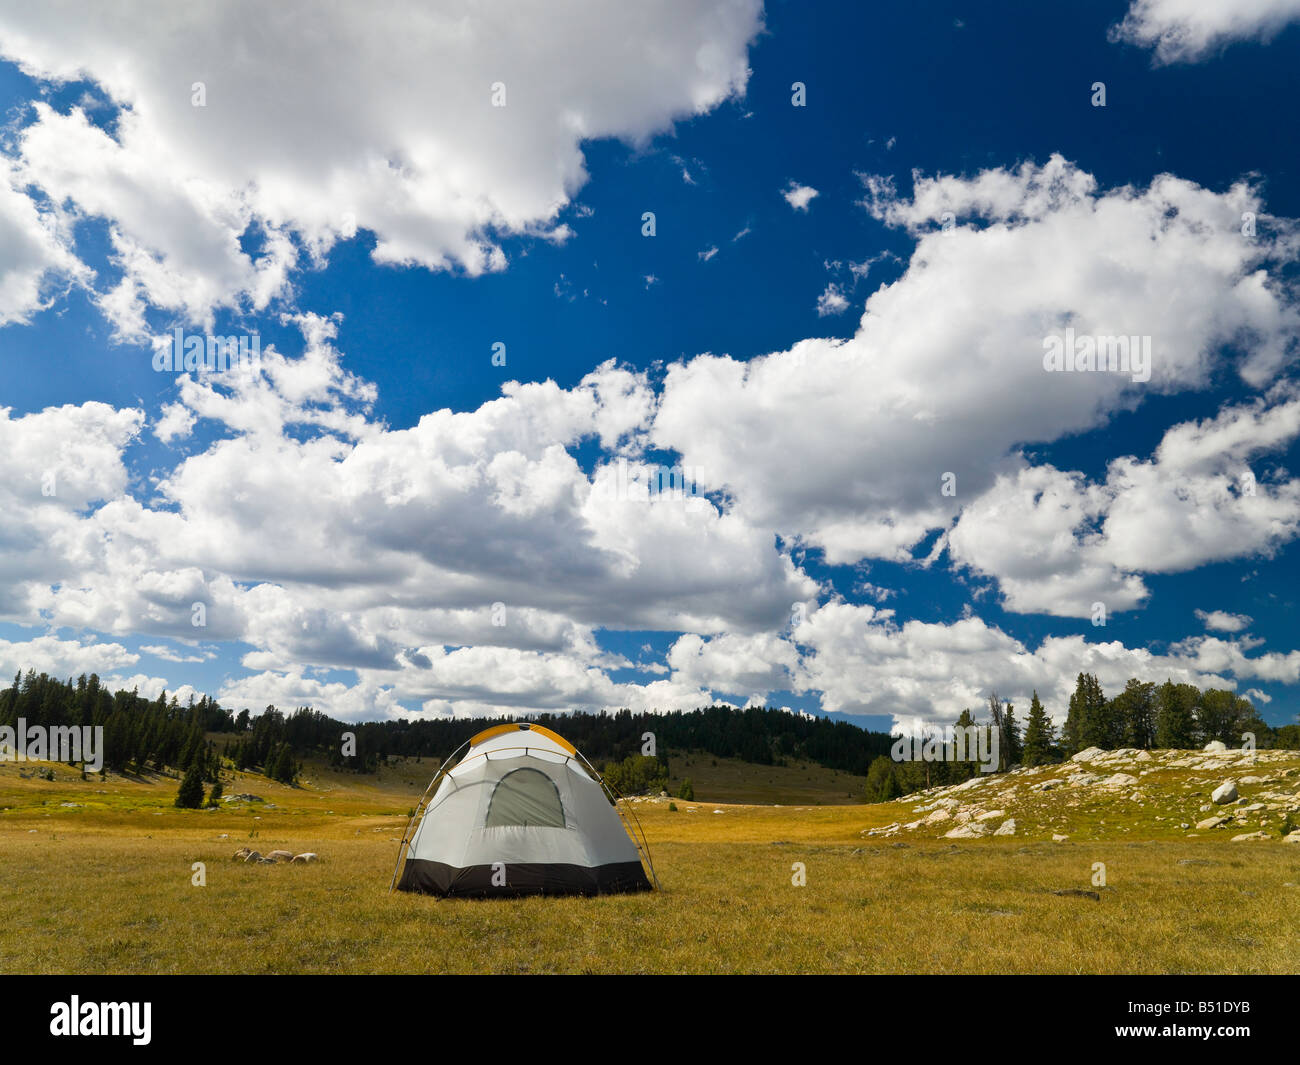 Camping tent in the wildness - Stock Image